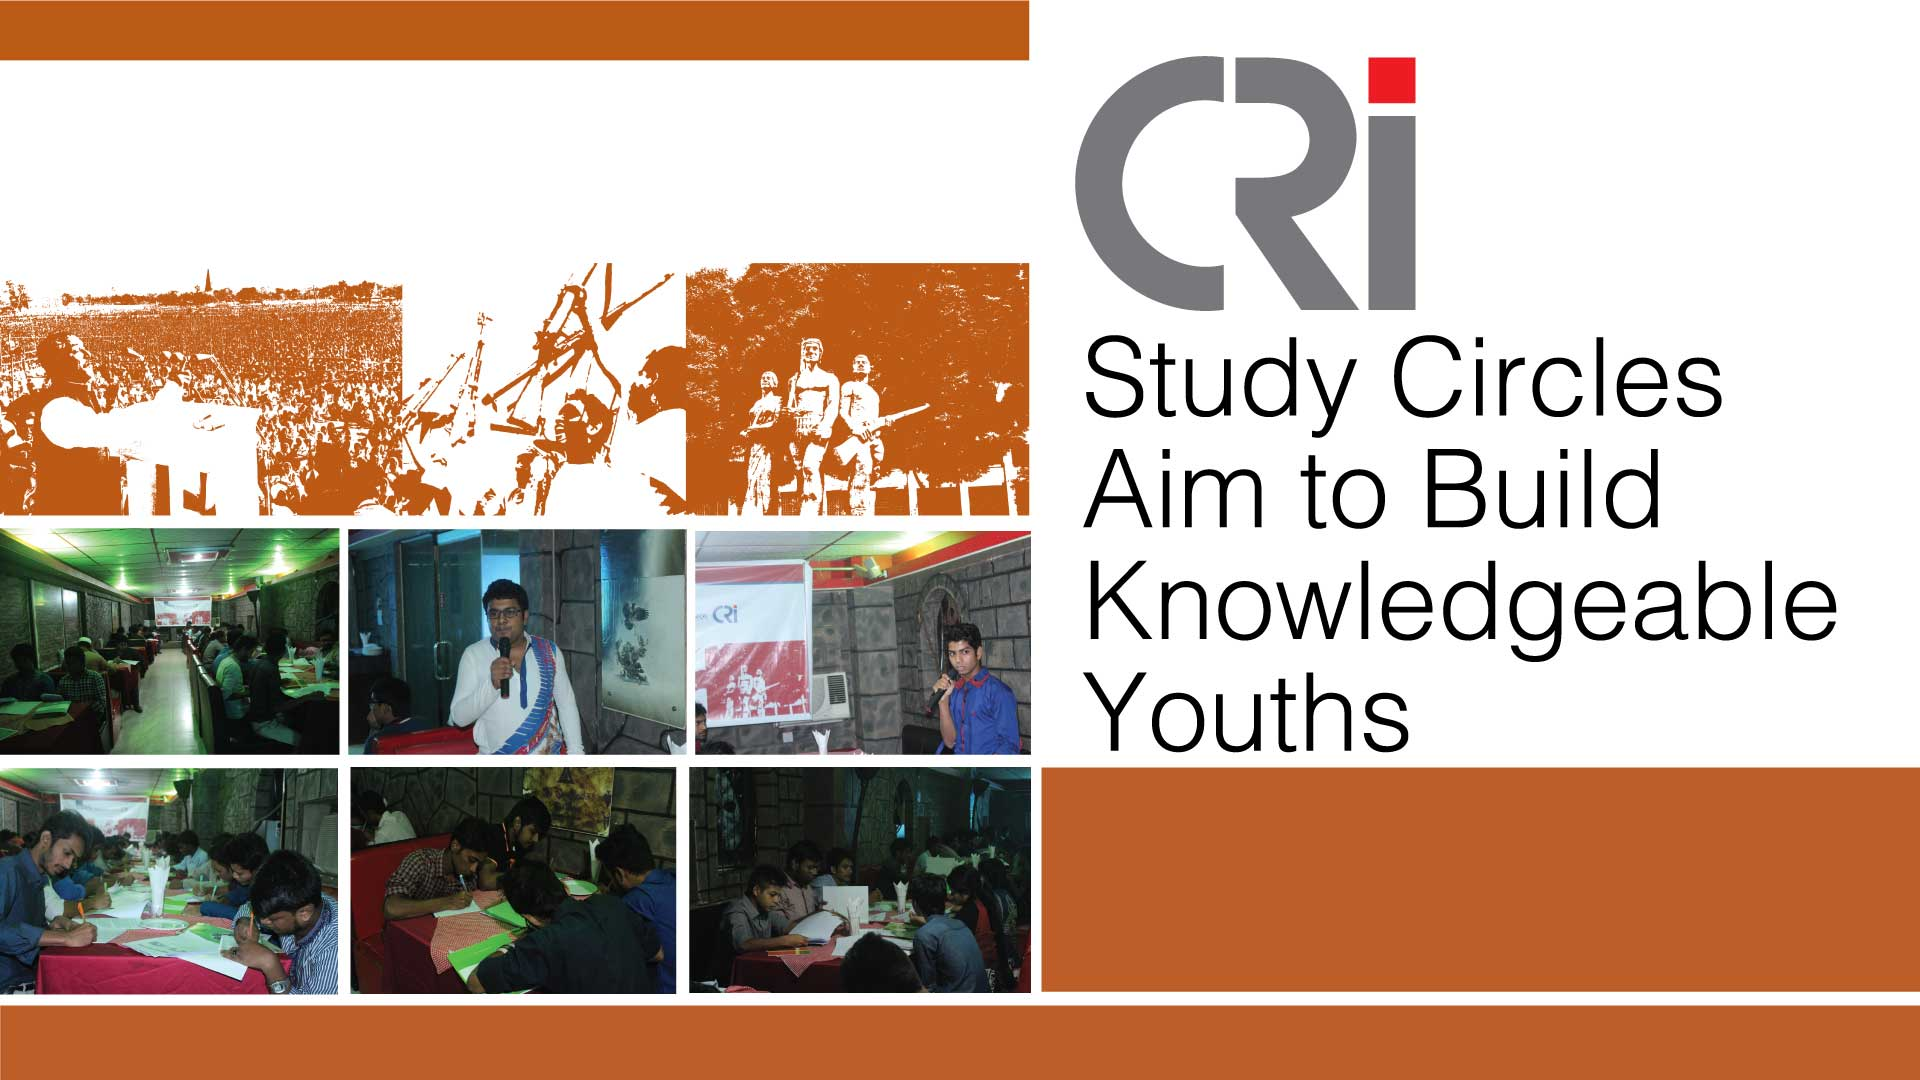 CRI Study Circles Aim to Build Knowledgeable Youths